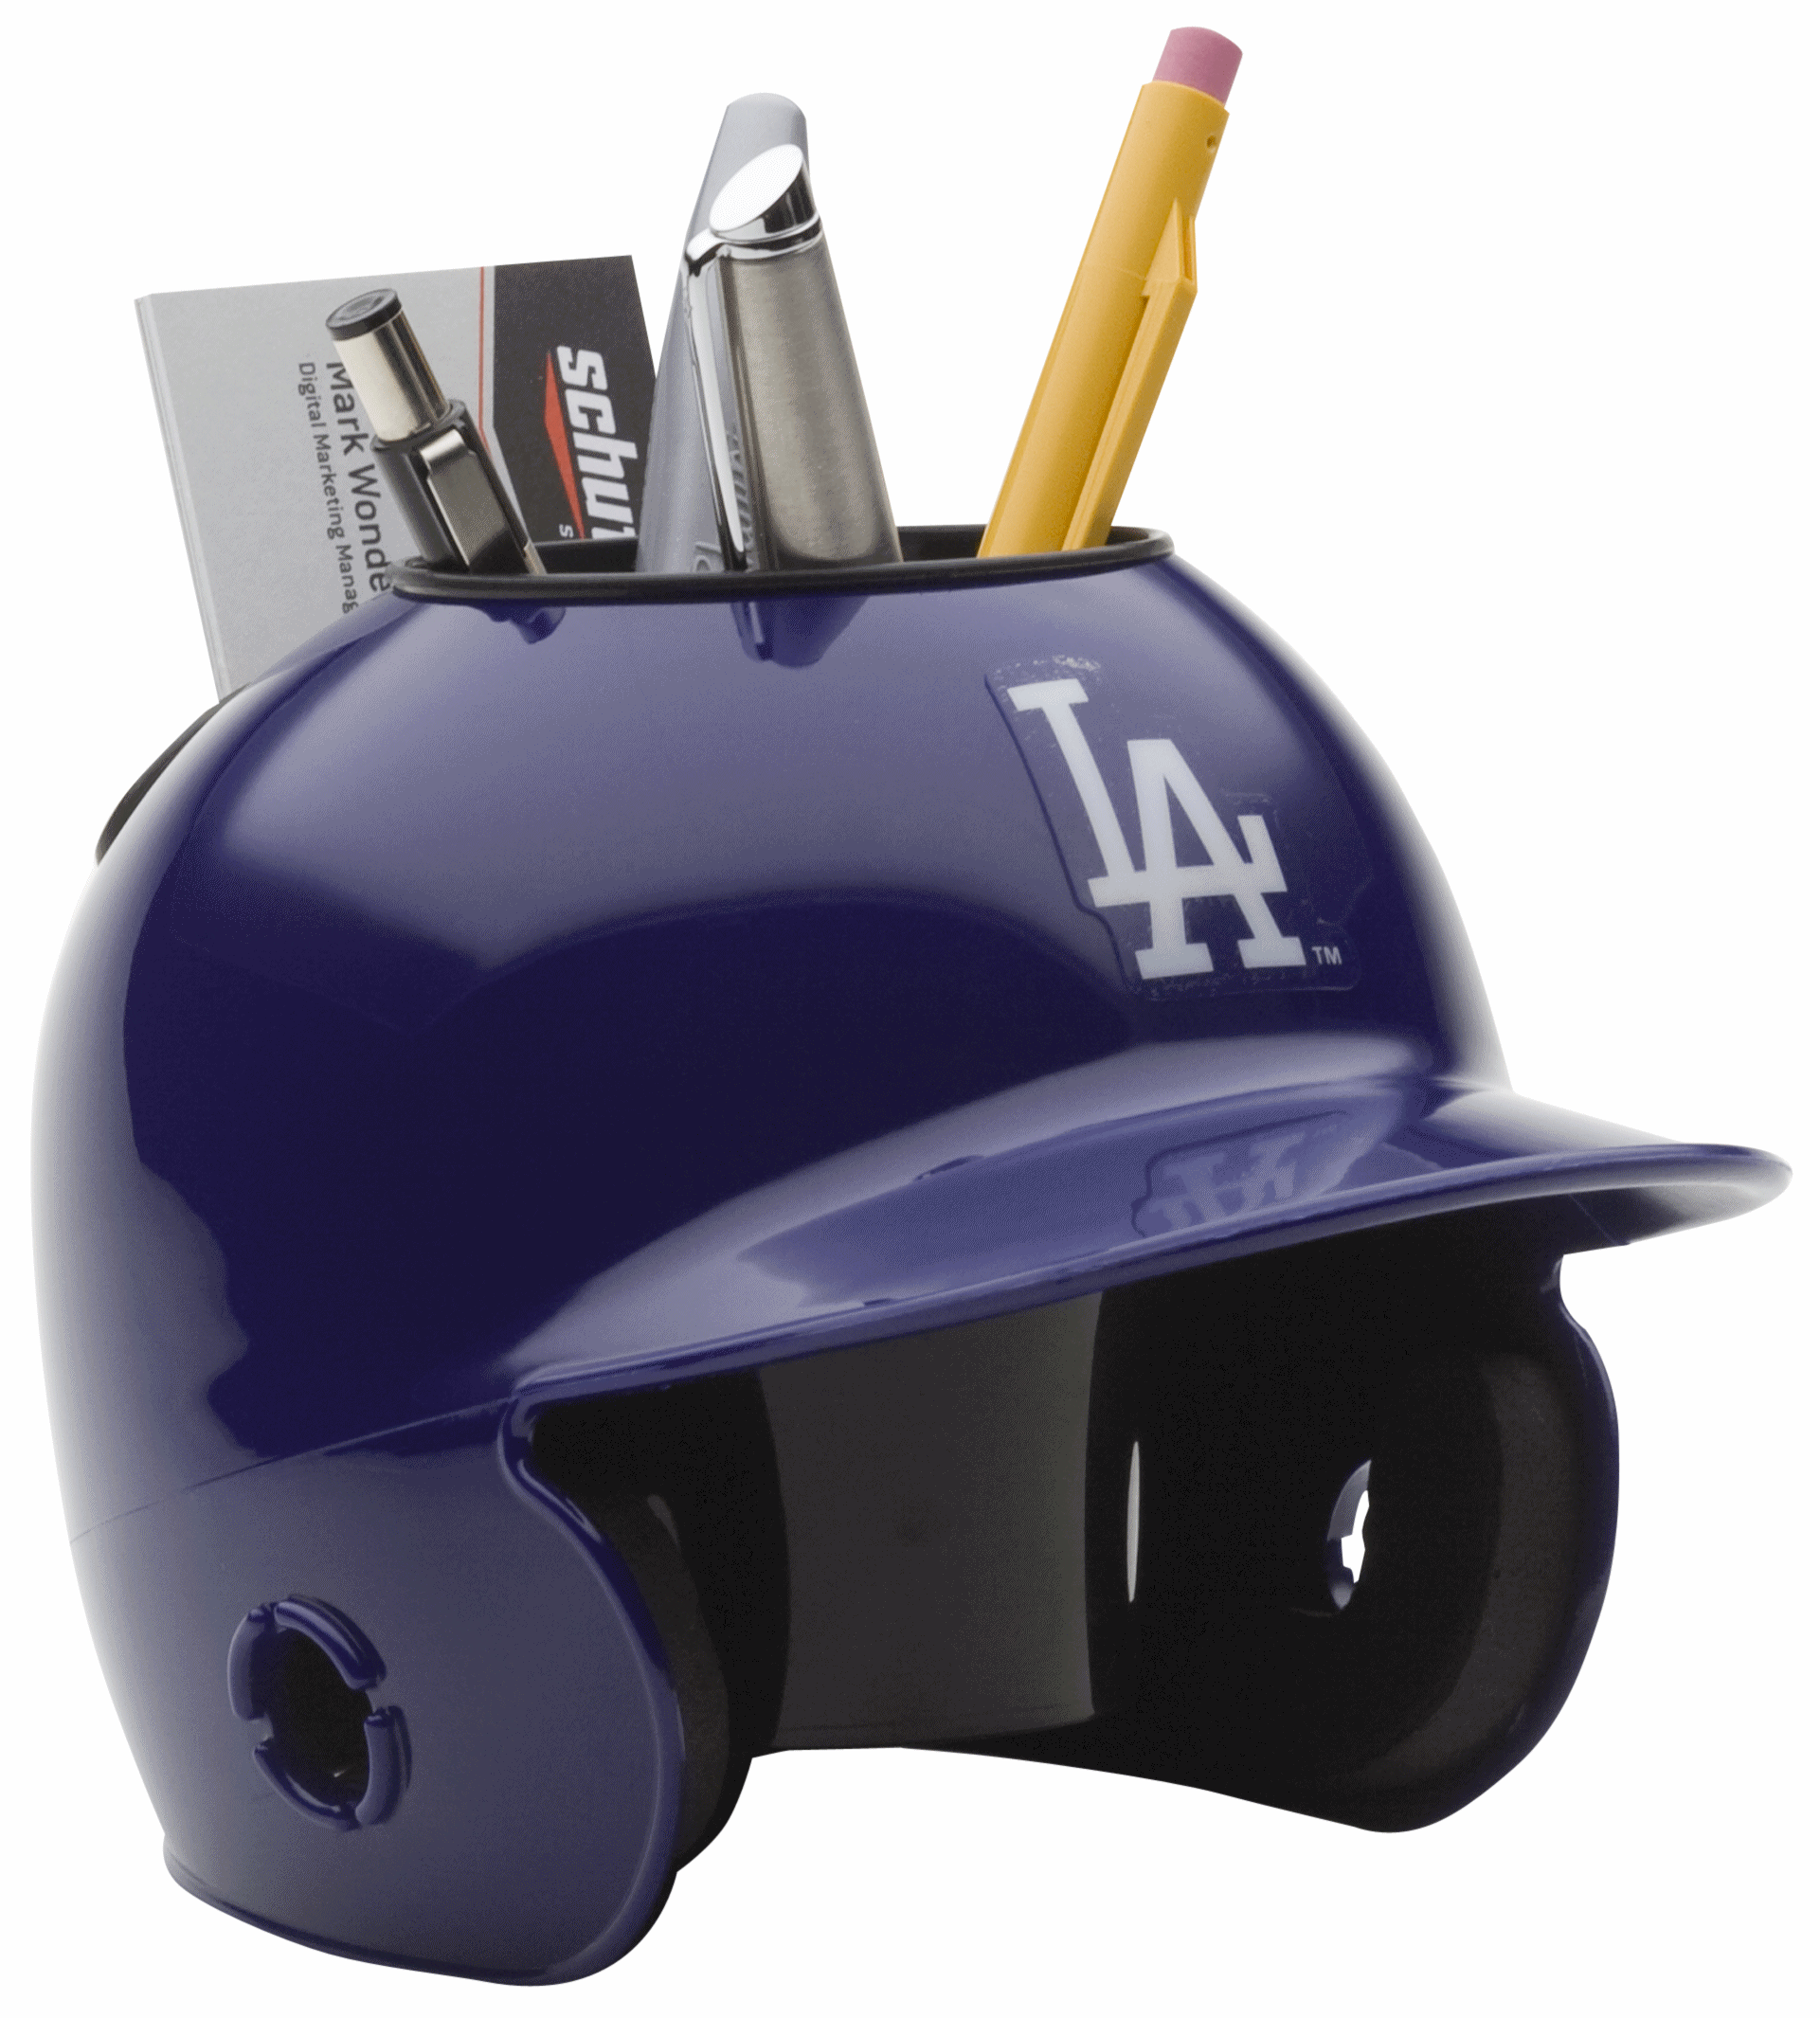 Los Angeles Dodgers Miniature Batters Helmet Desk Caddy